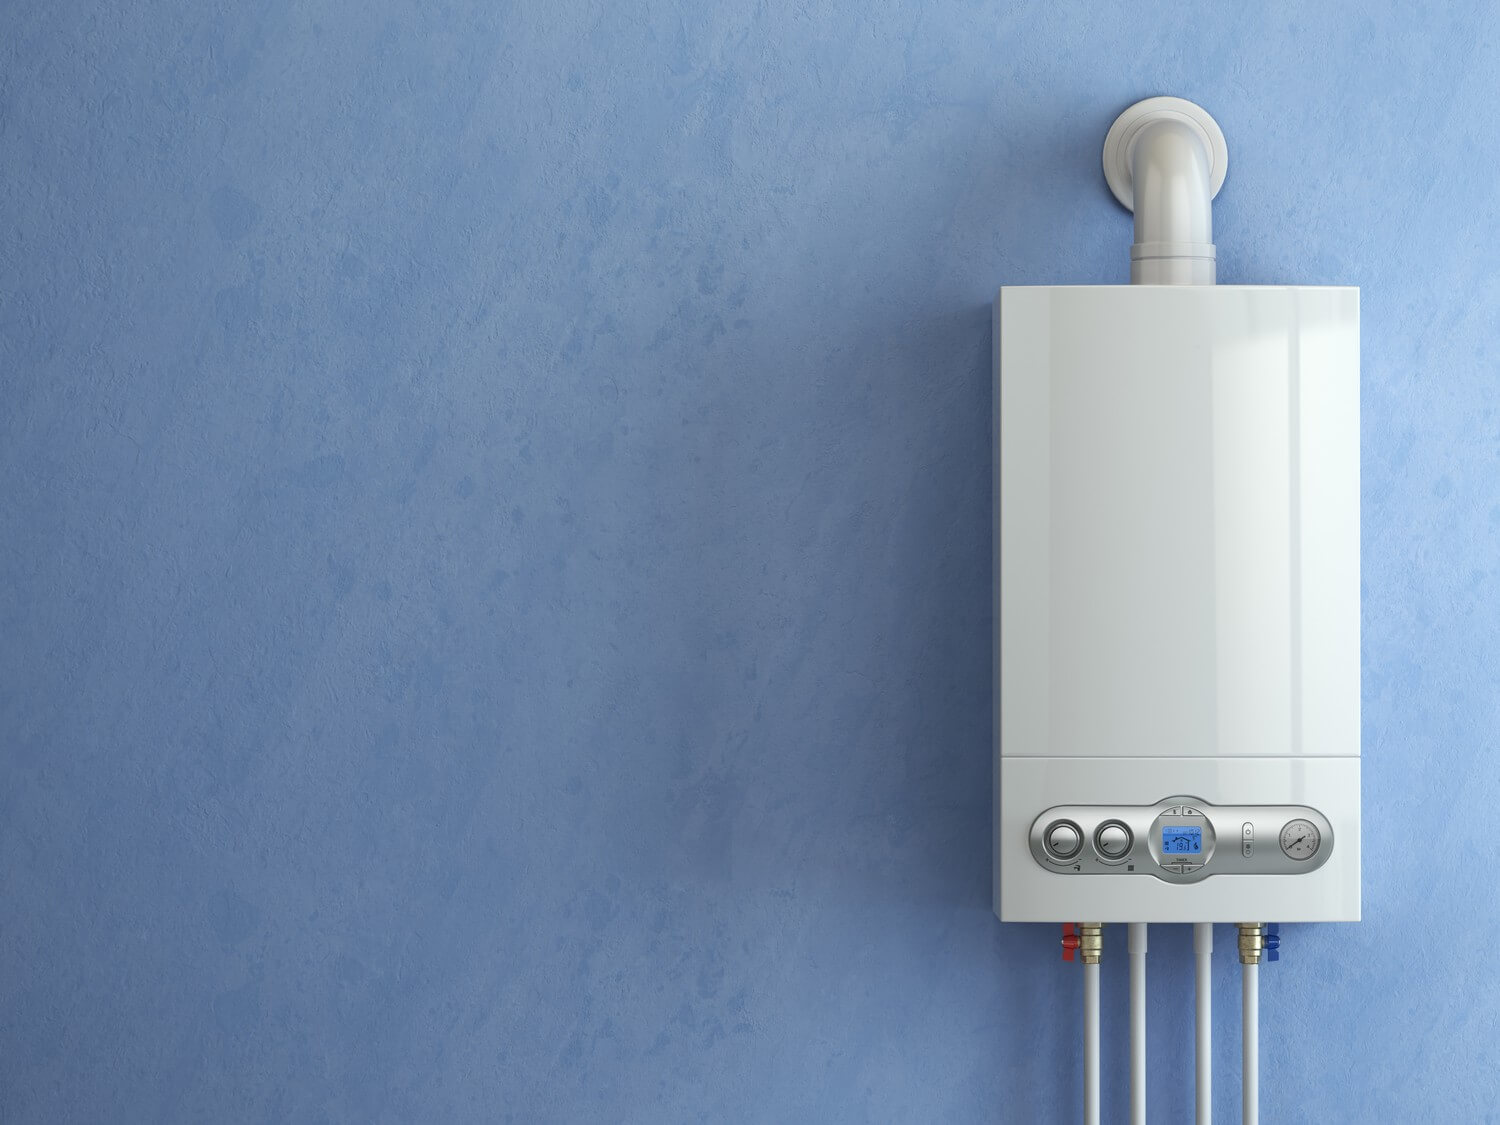 Boiler Finance - from £14 per month